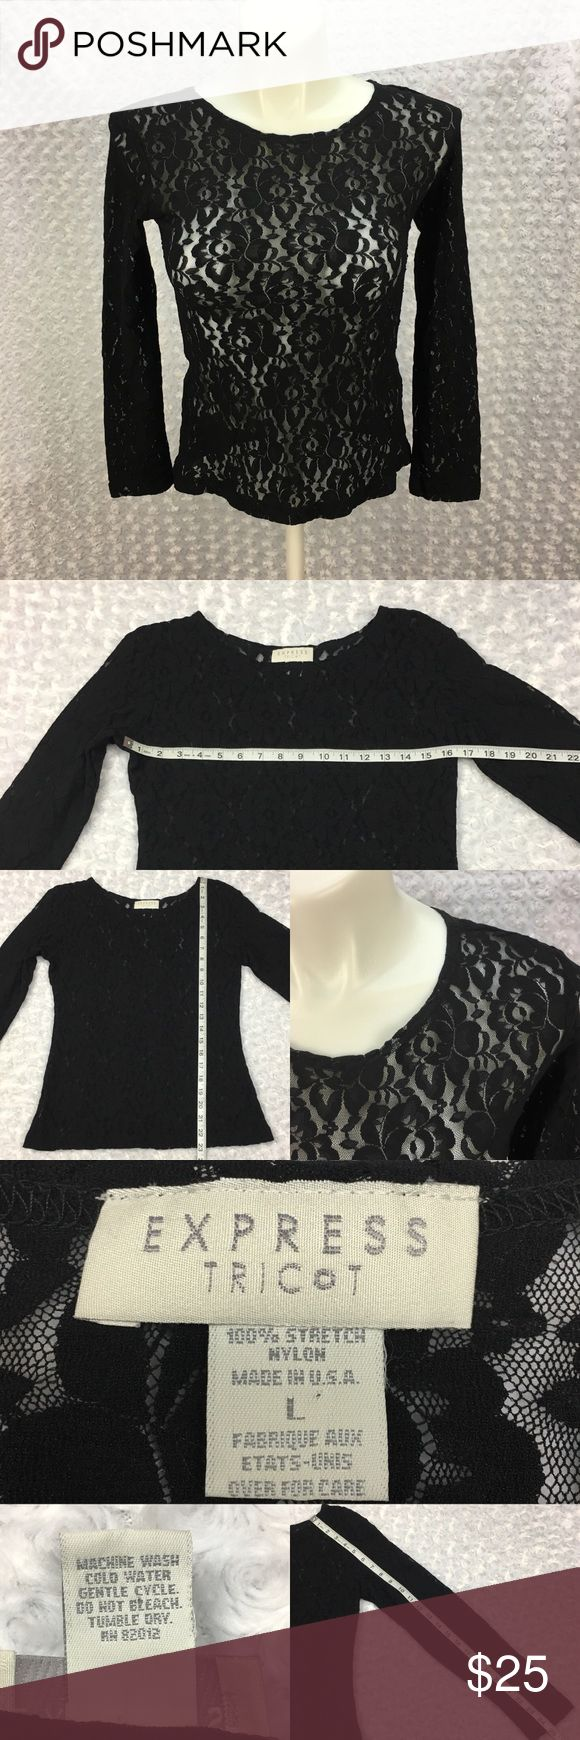 Longsleeve Stretchy Sheer Lace Pullover Top Express Tricot Black Longsleeve Stretchy Sheer Lace Pullover Top Size Runs Small  Size: Large (seems like the shirt runs small, please CHECK MEASUREMENTS)  Condition: Gently used.   * This listing is for ONE (1) Top *  * See photos for measurements and more details *  Please note: Color may vary slightly due to display screen calibrations. A21 Express Tricot Tops